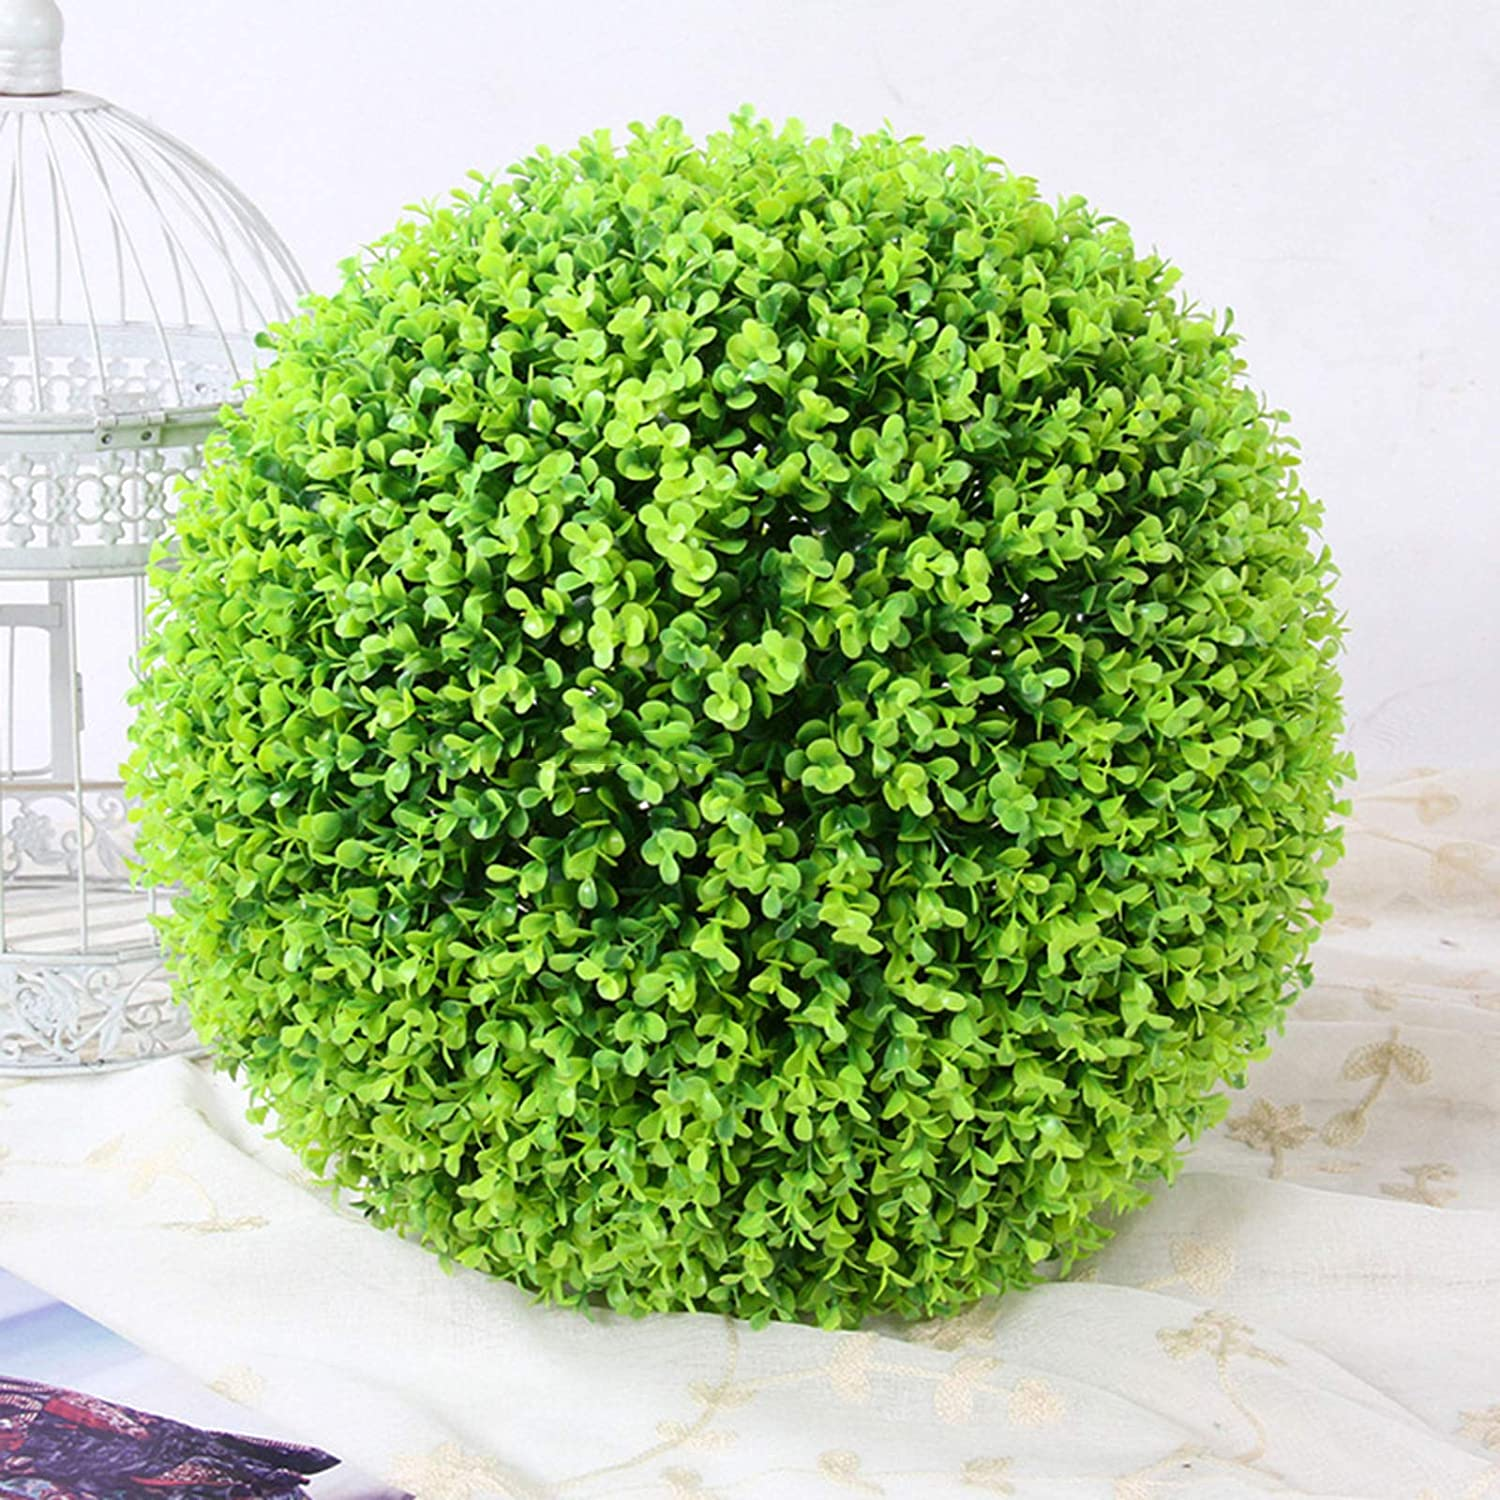 LAHappy Artificial High quality Plants Grass Don't miss the campaign Ball G Simulation Milan Hanging